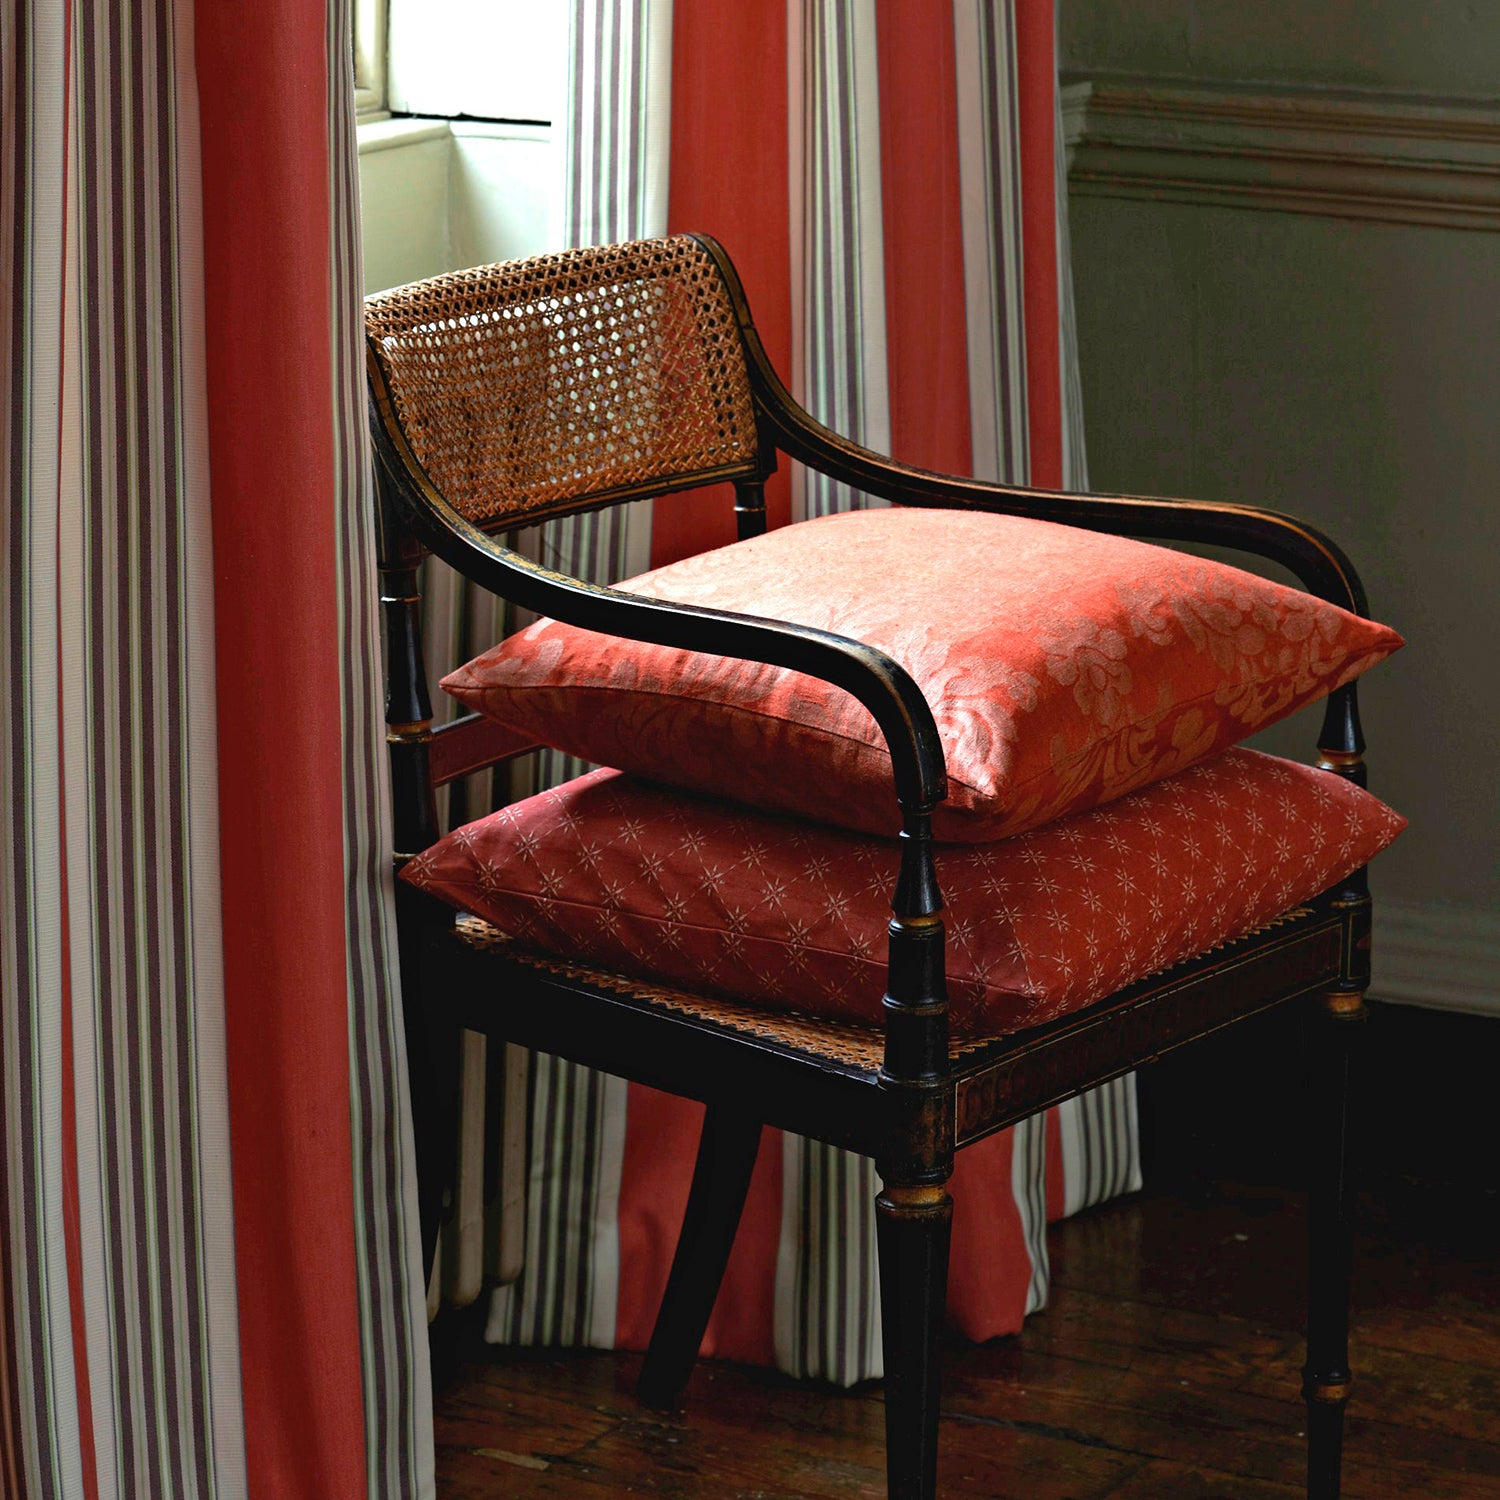 Lifestyle image of a chair and curtains in classic fabrics